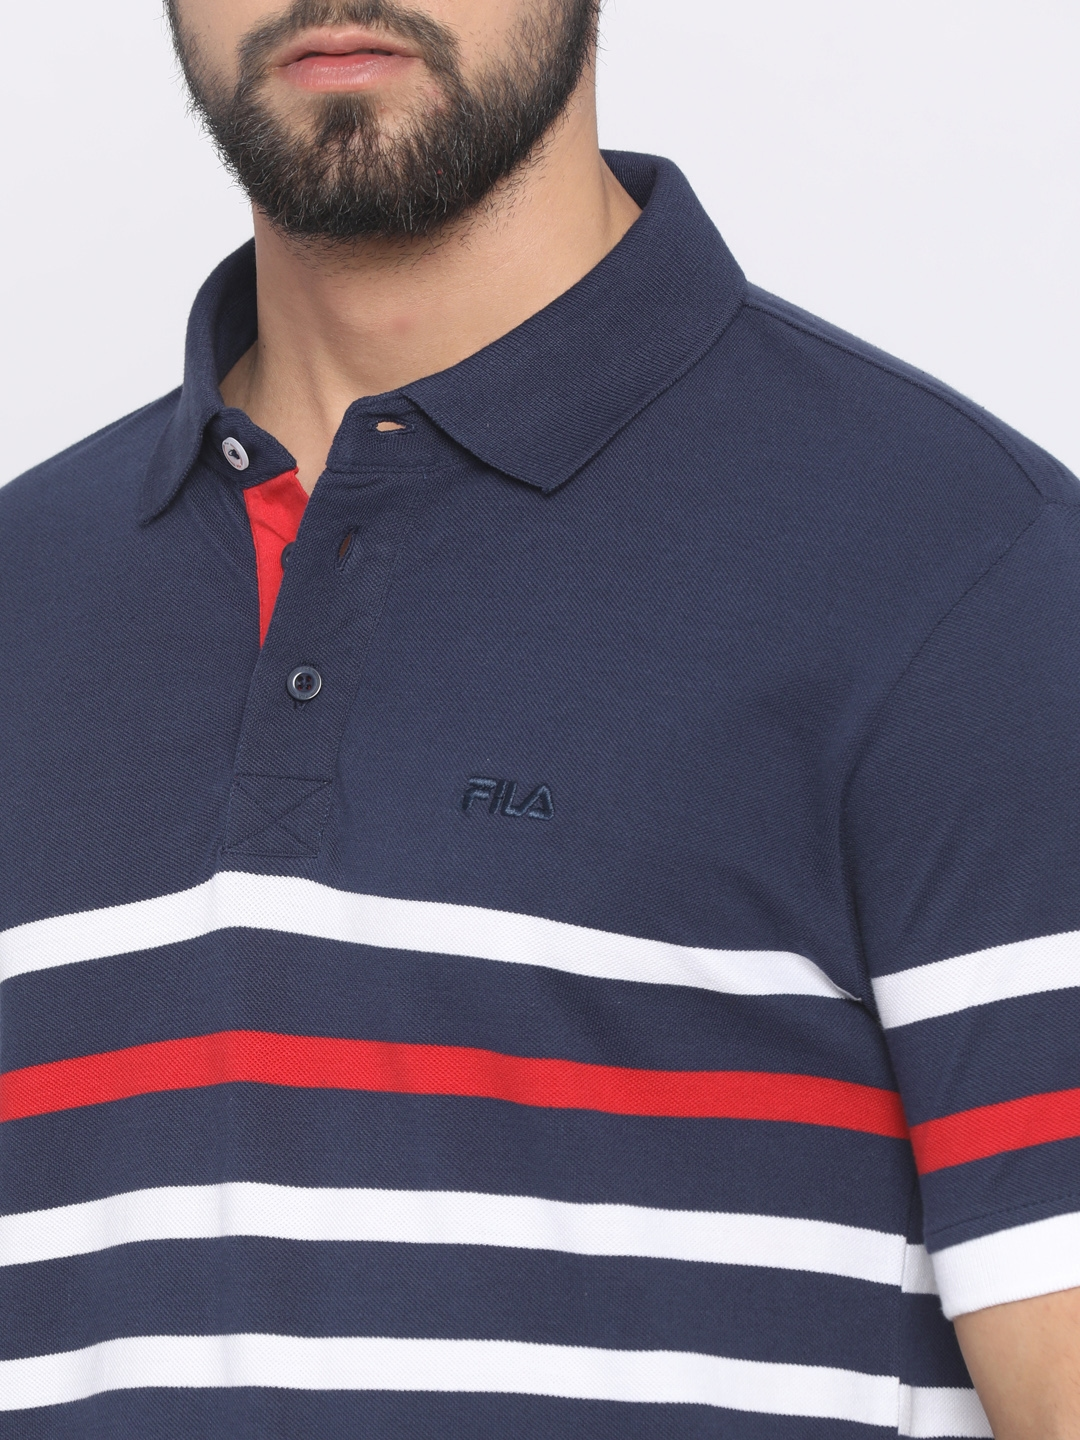 4e79599076 Buy FILA Men Blue & White Striped Polo Collar T Shirt - Tshirts for ...